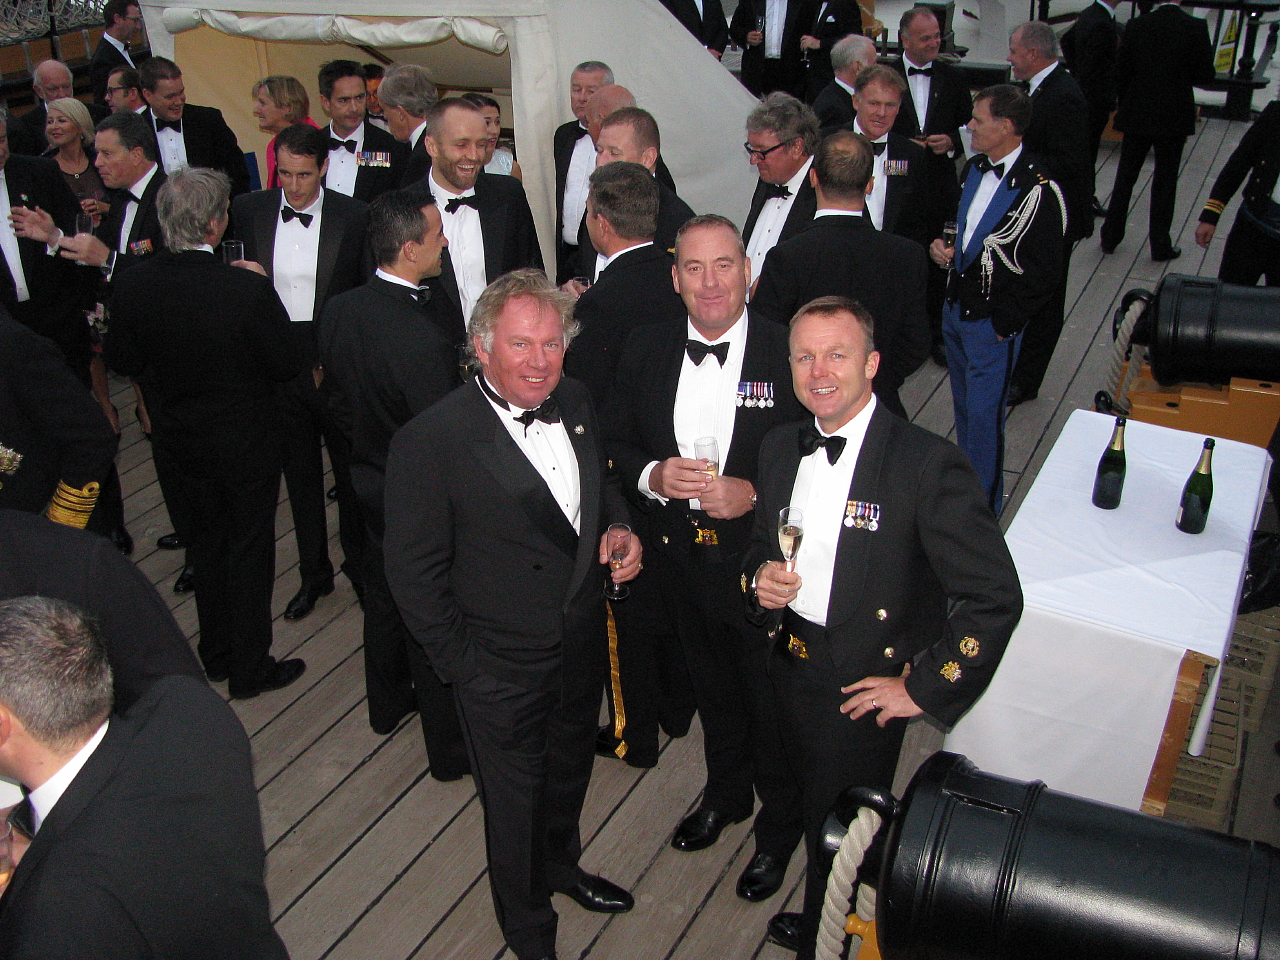 Project Vernon charity dinner on board HMS Victory 11 Sep 2014 (46).jpg